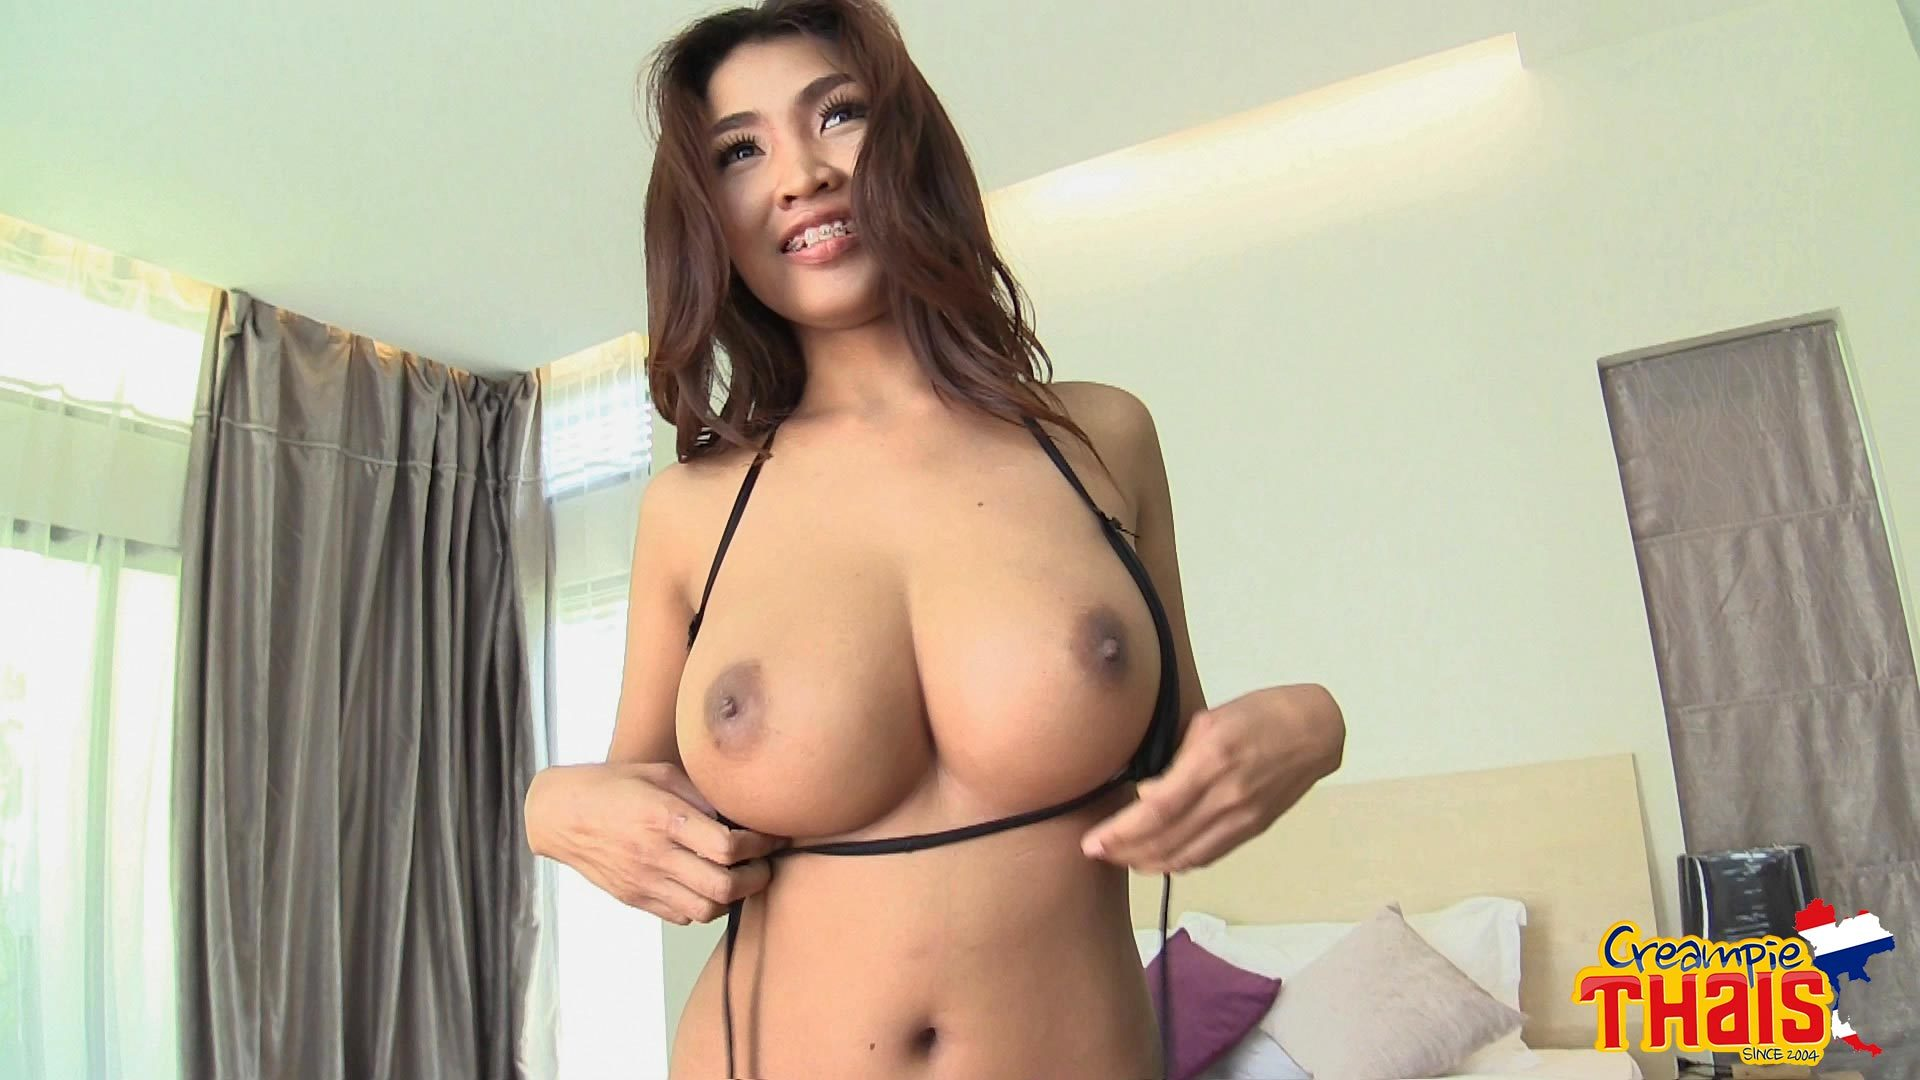 Tittiporn from Creampie Thais Big Breasts (17/17)